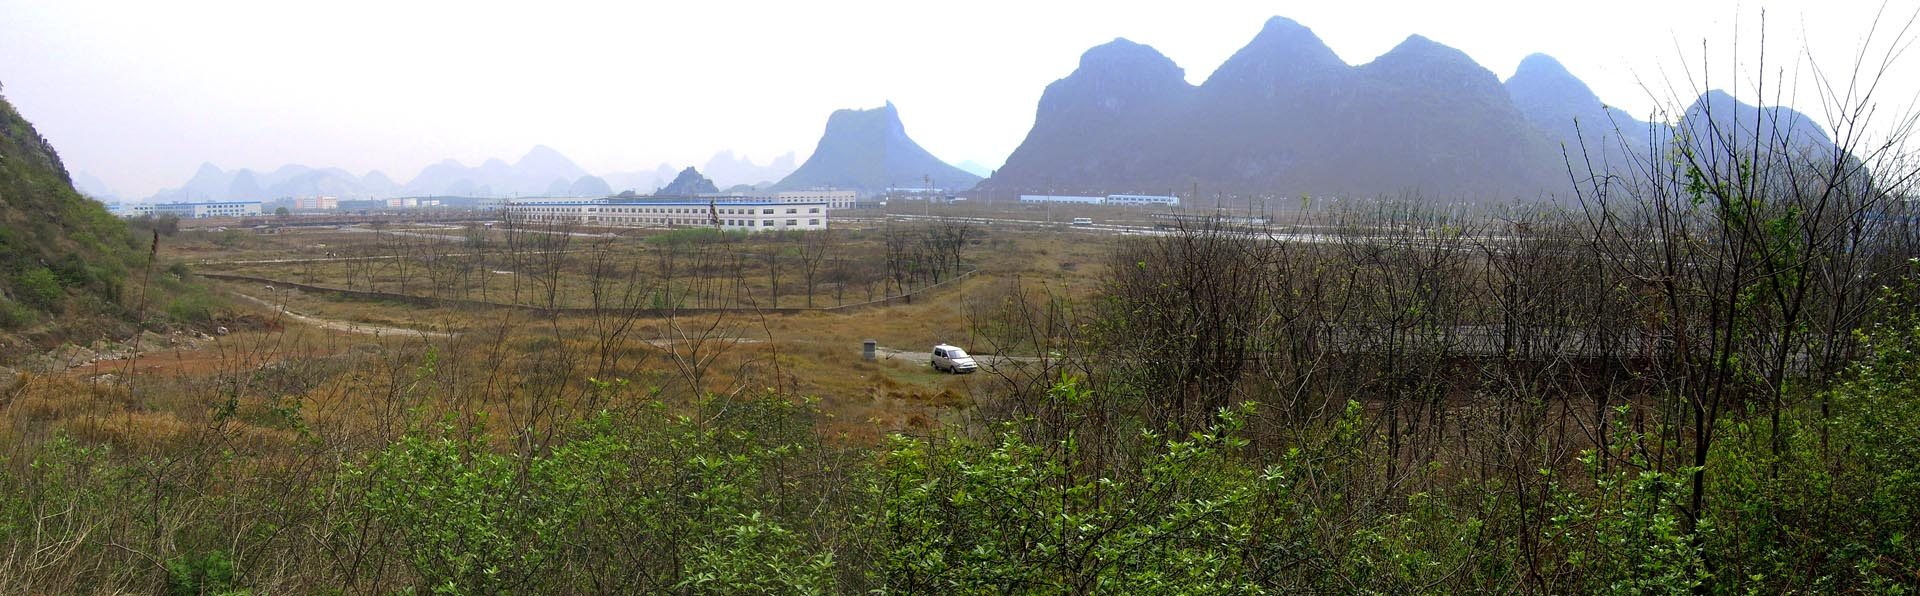 Flying Tigers Guilin Airfield location image